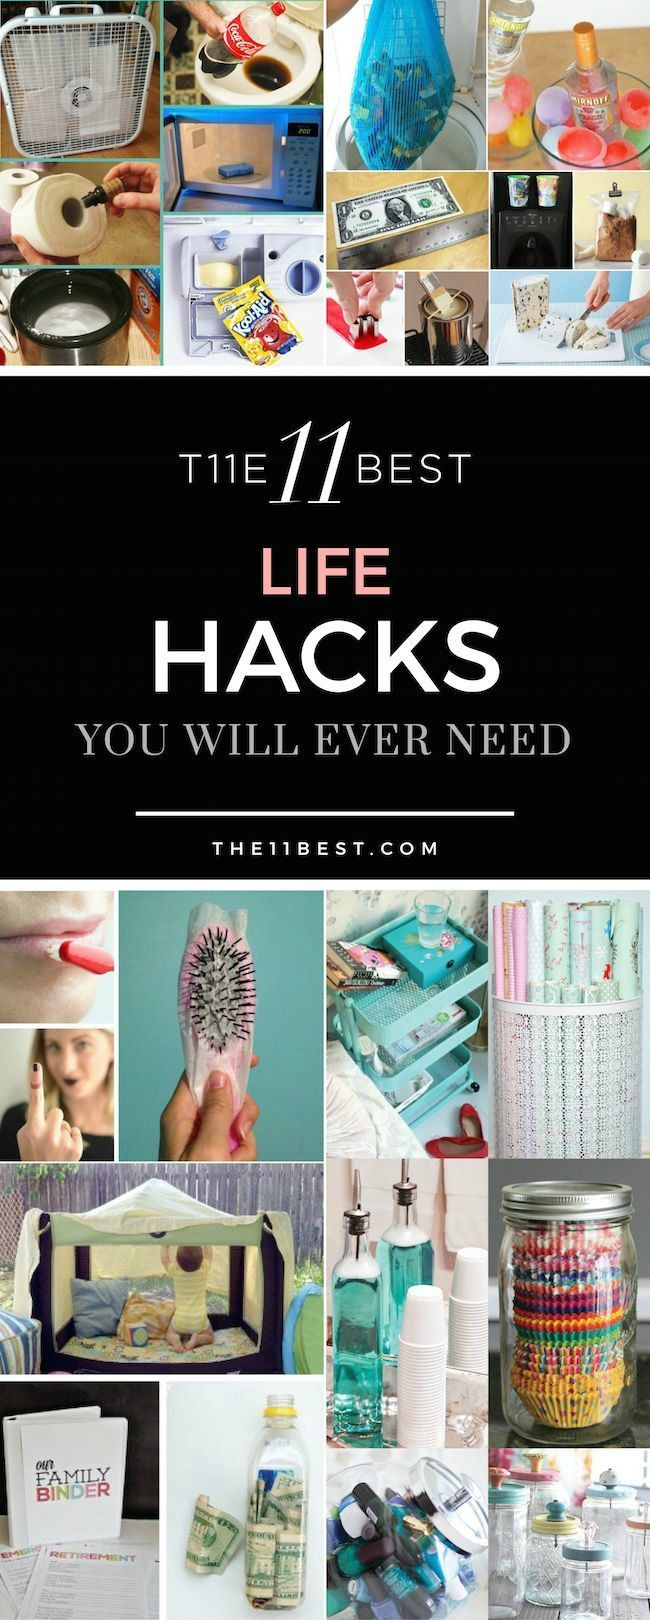 The 11 Best Life Hacks You Will Ever Need! A DIY idea for every part of your hom...